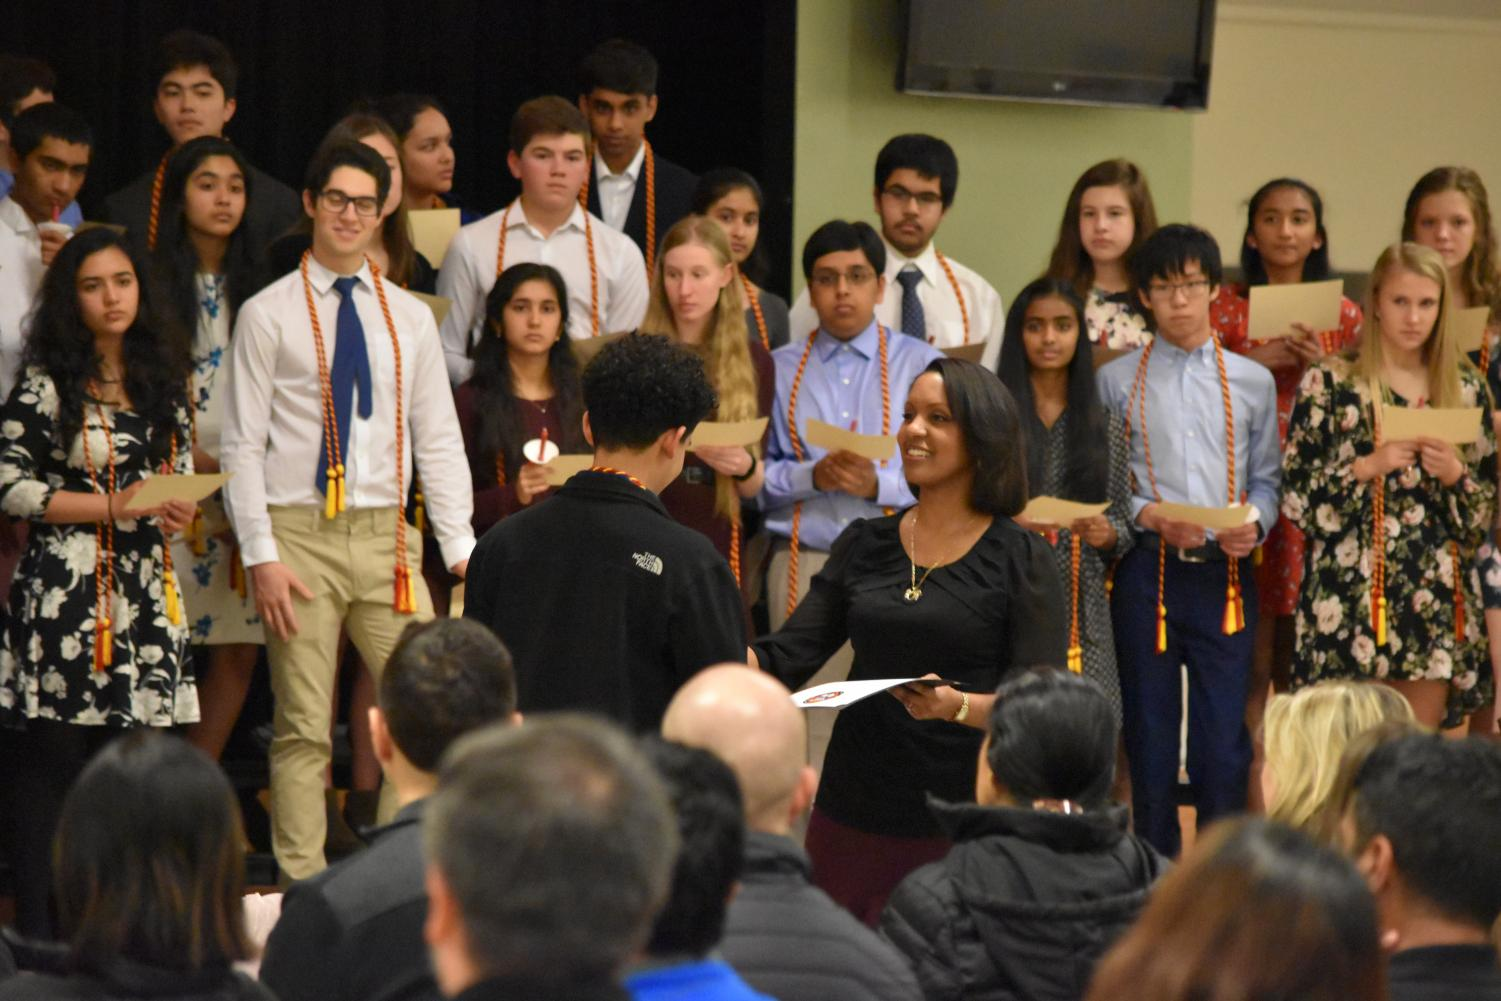 Sra.+MilyBett+Llanos-Gremillion+shakes+hands+with+inductees+and+hands+them+their+certificates.